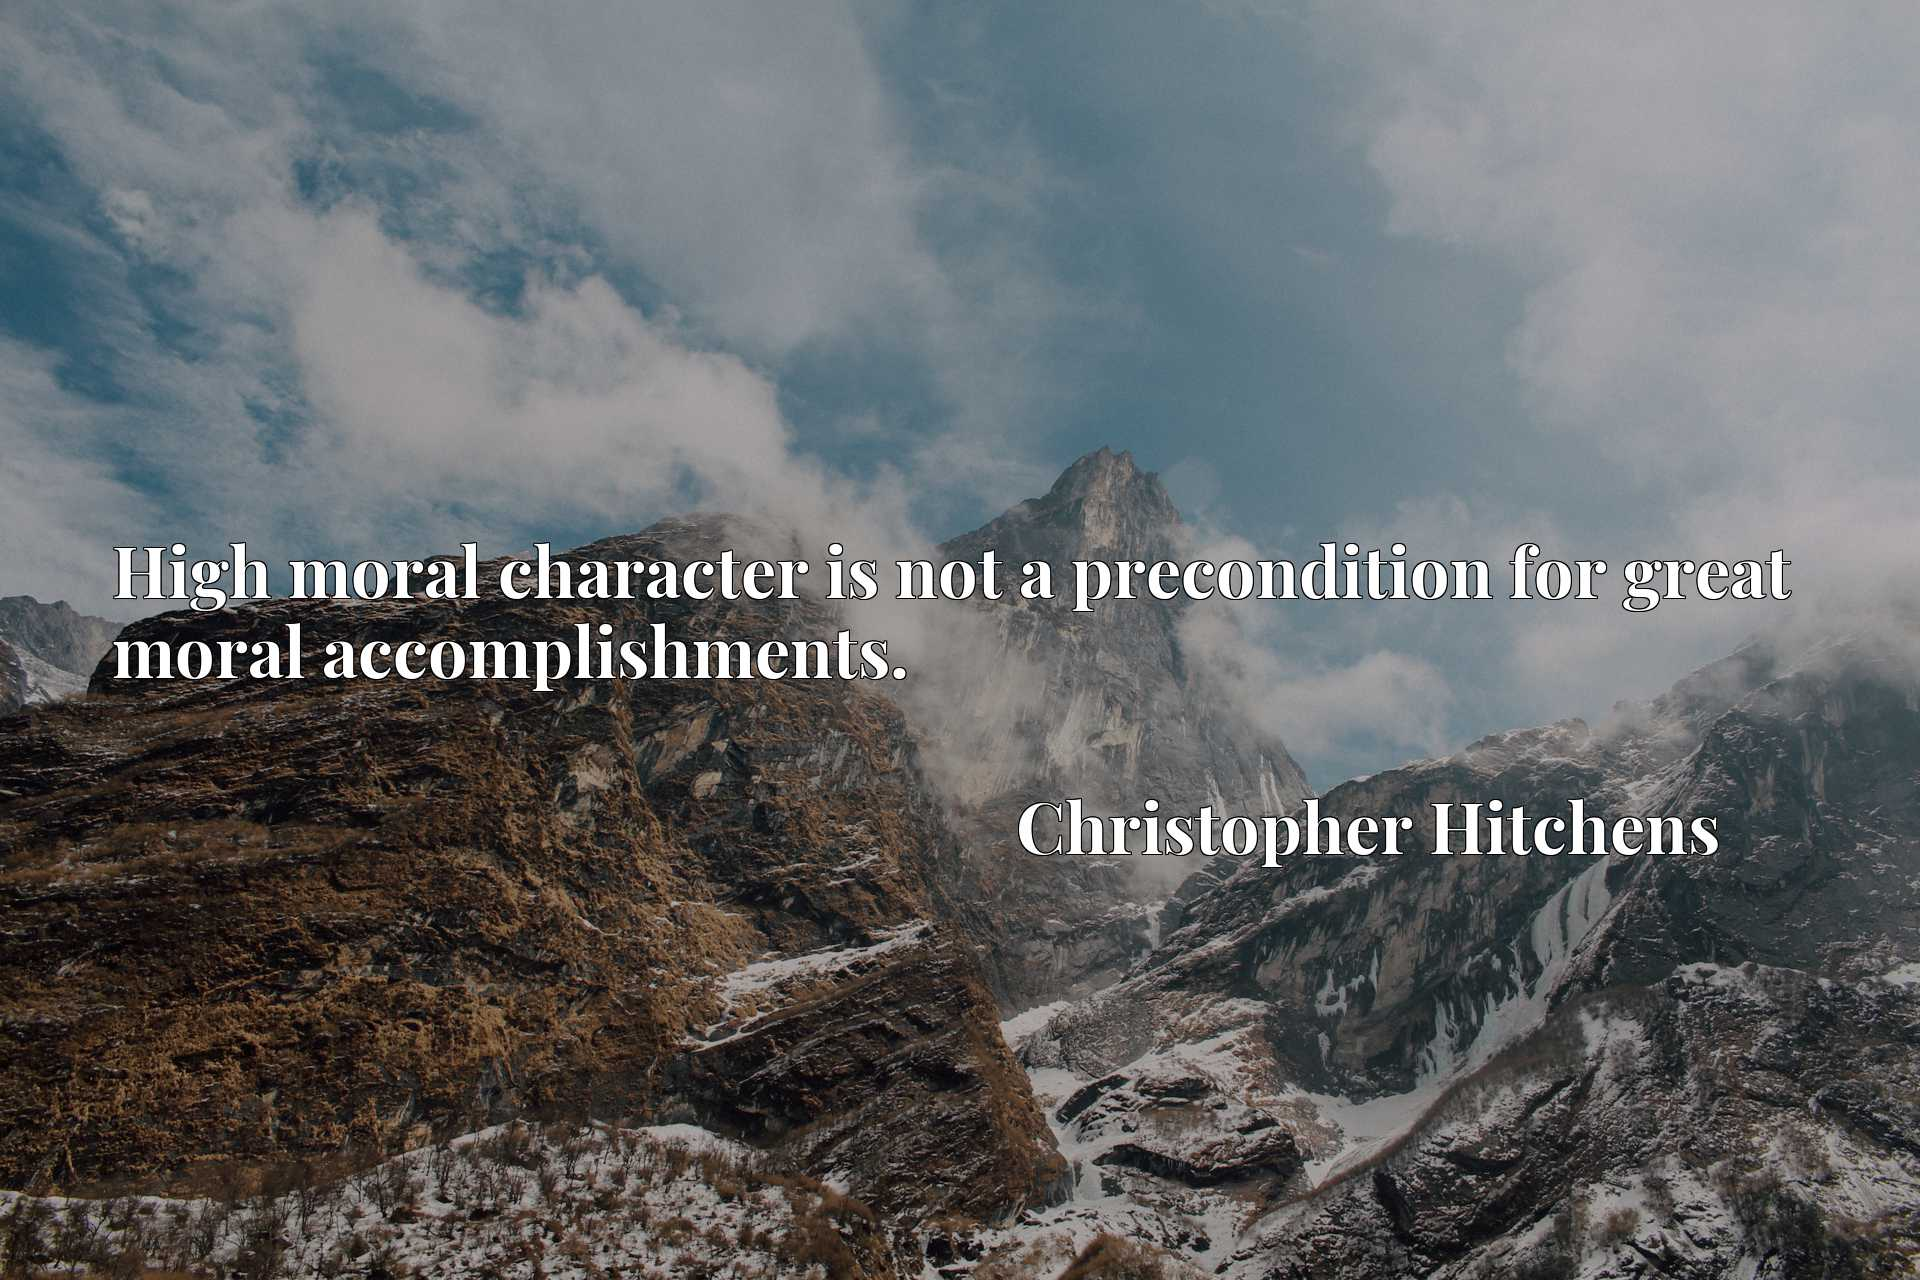 High moral character is not a precondition for great moral accomplishments.